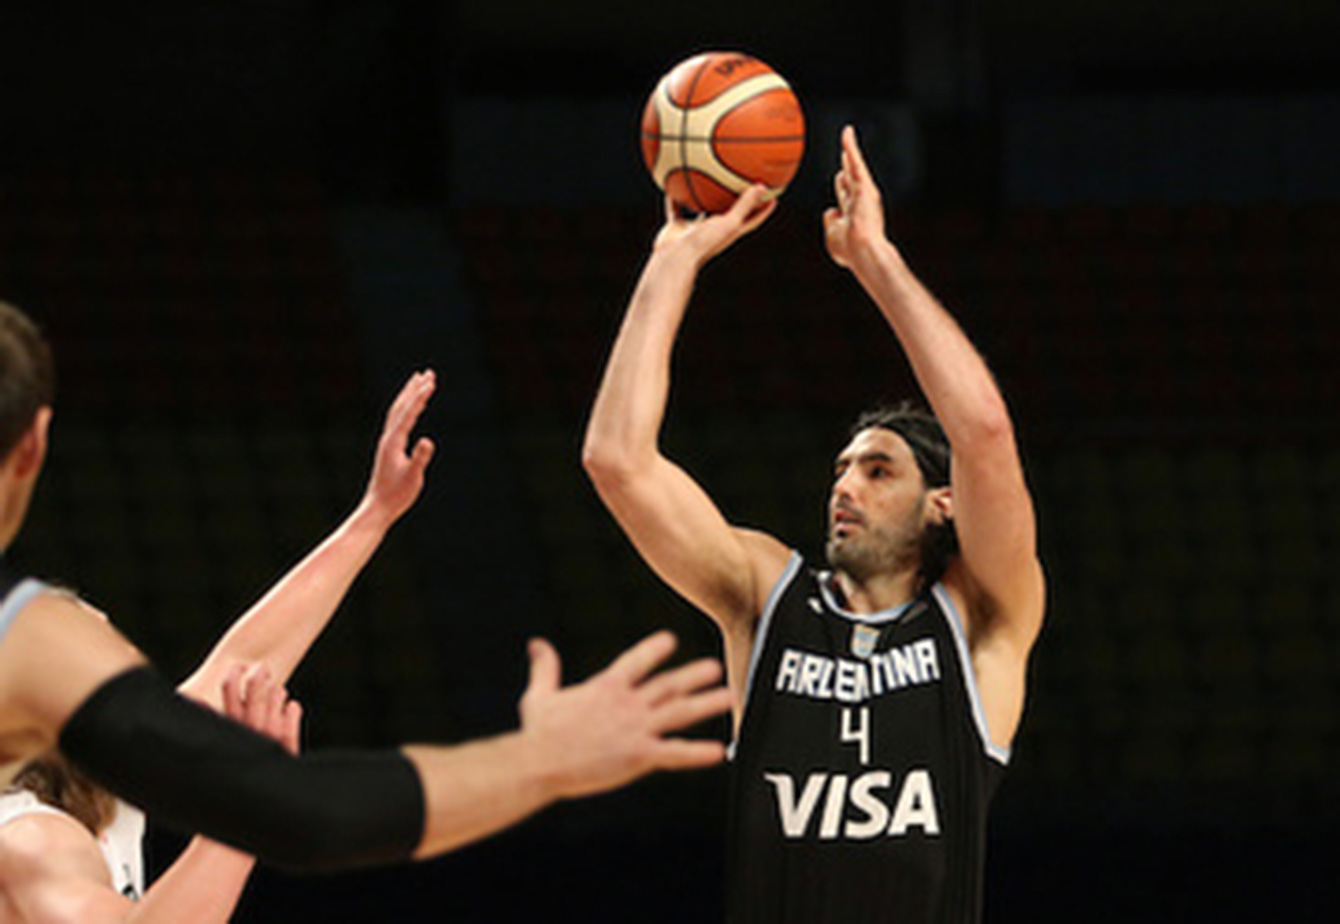 In a year, after the olympics. Luis Scola   Team Canada - Official Olympic Team Website